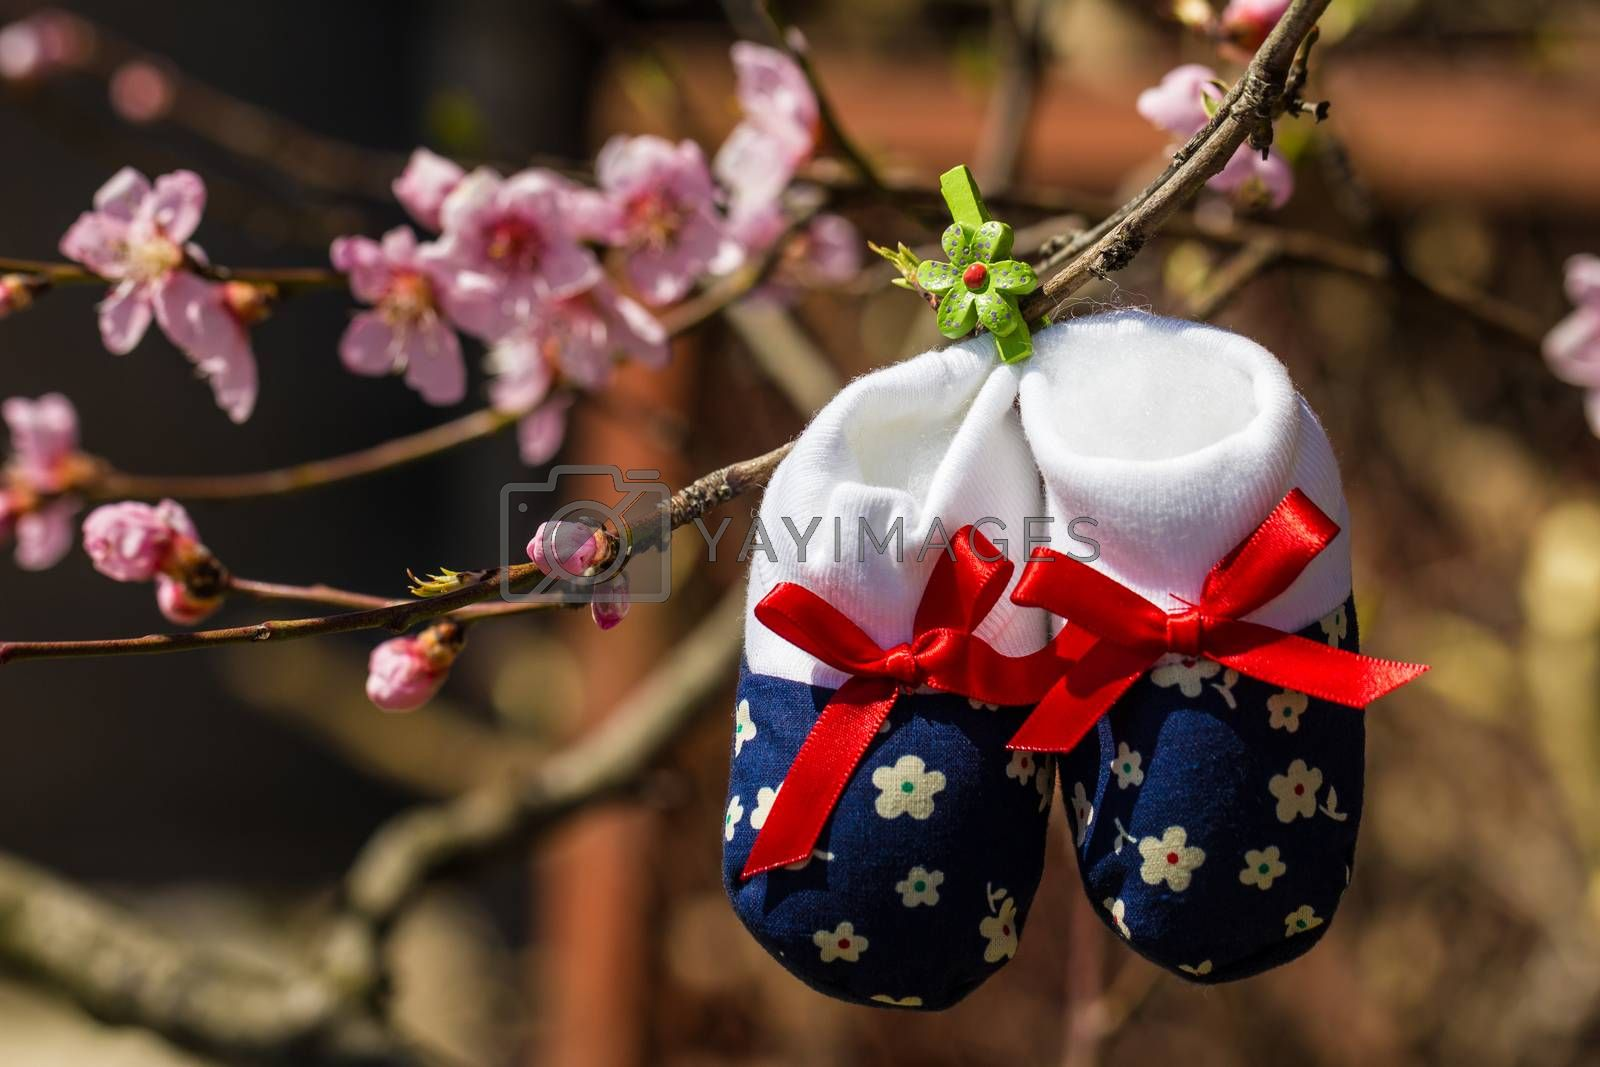 Baby slippers hanging on a branch of blossoming tree by maggee